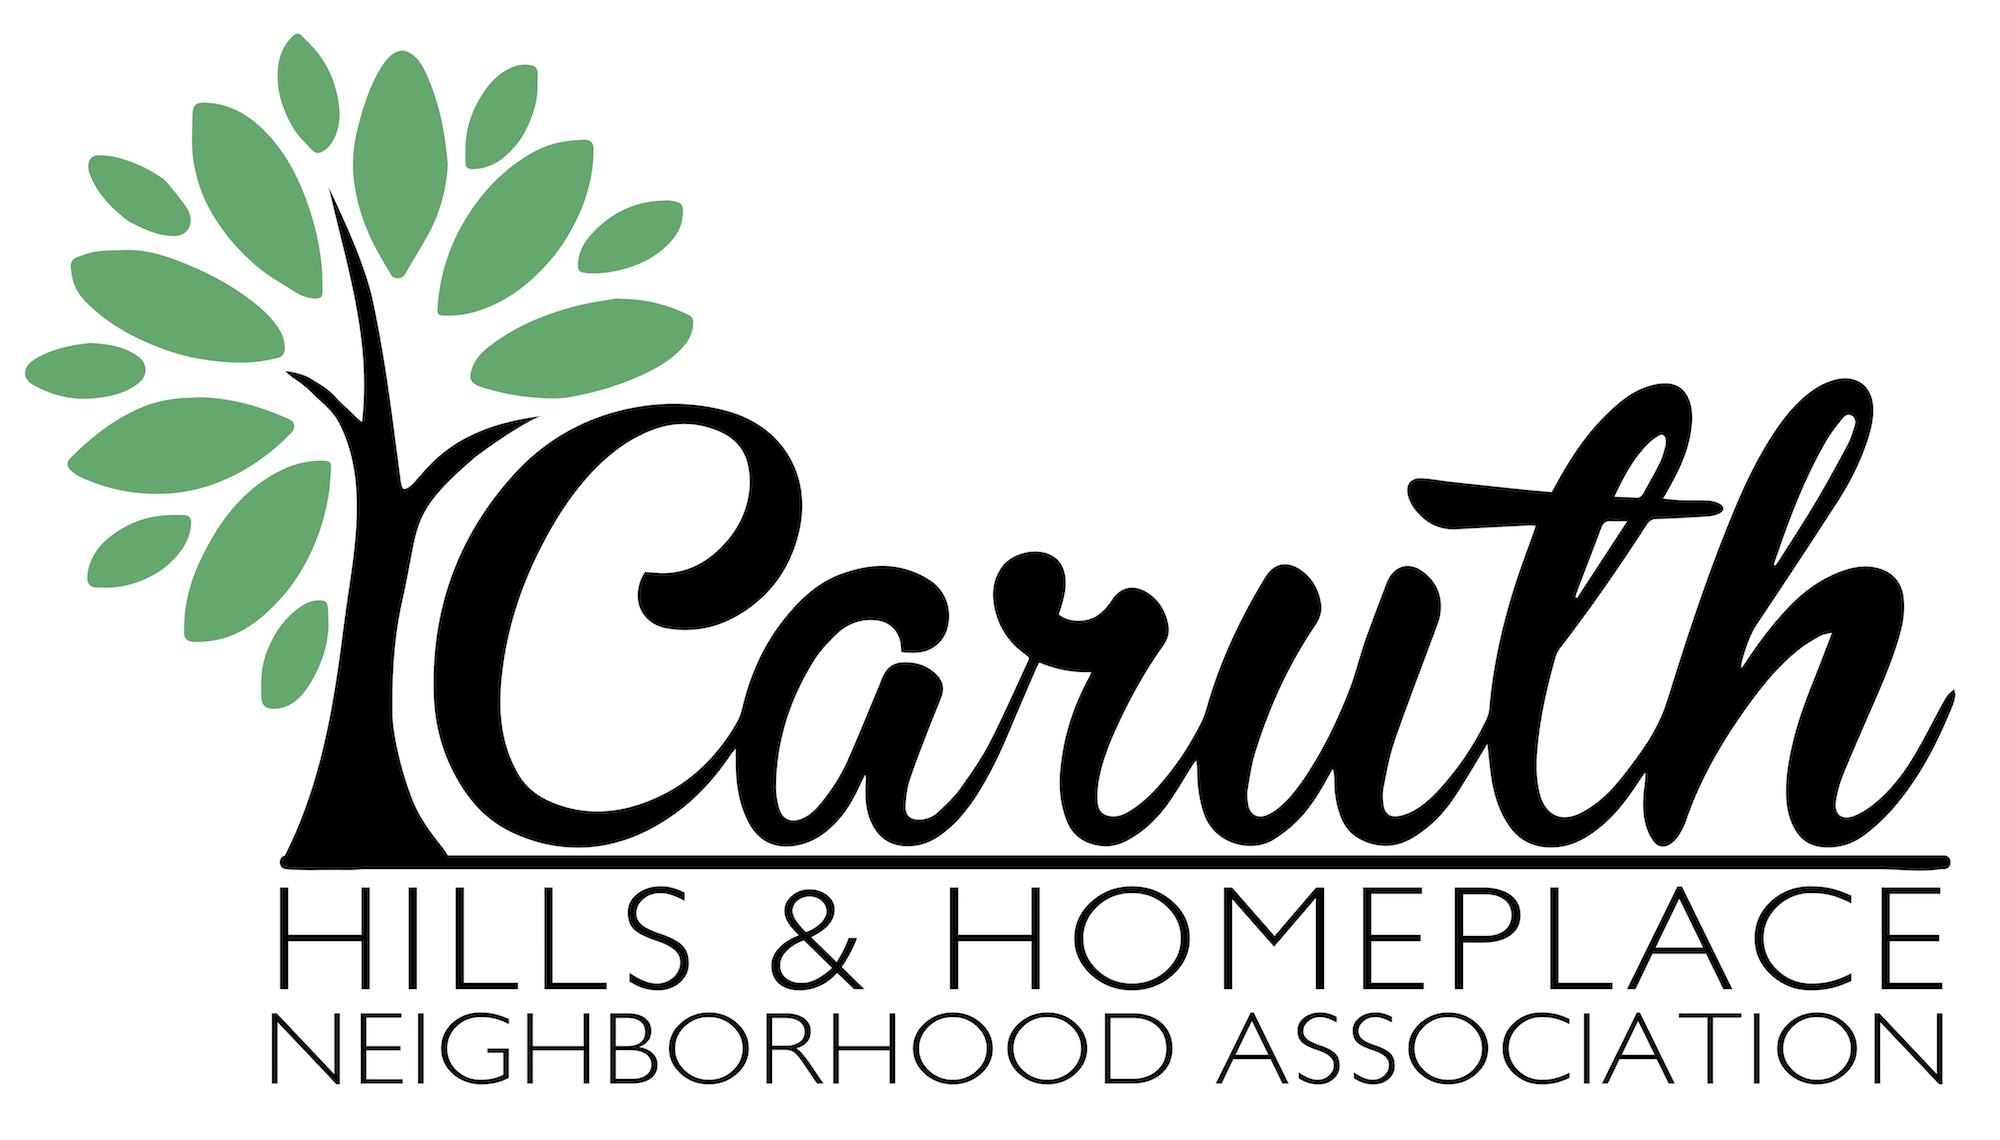 Caruth Hills and Homeplace Neighborhood Association